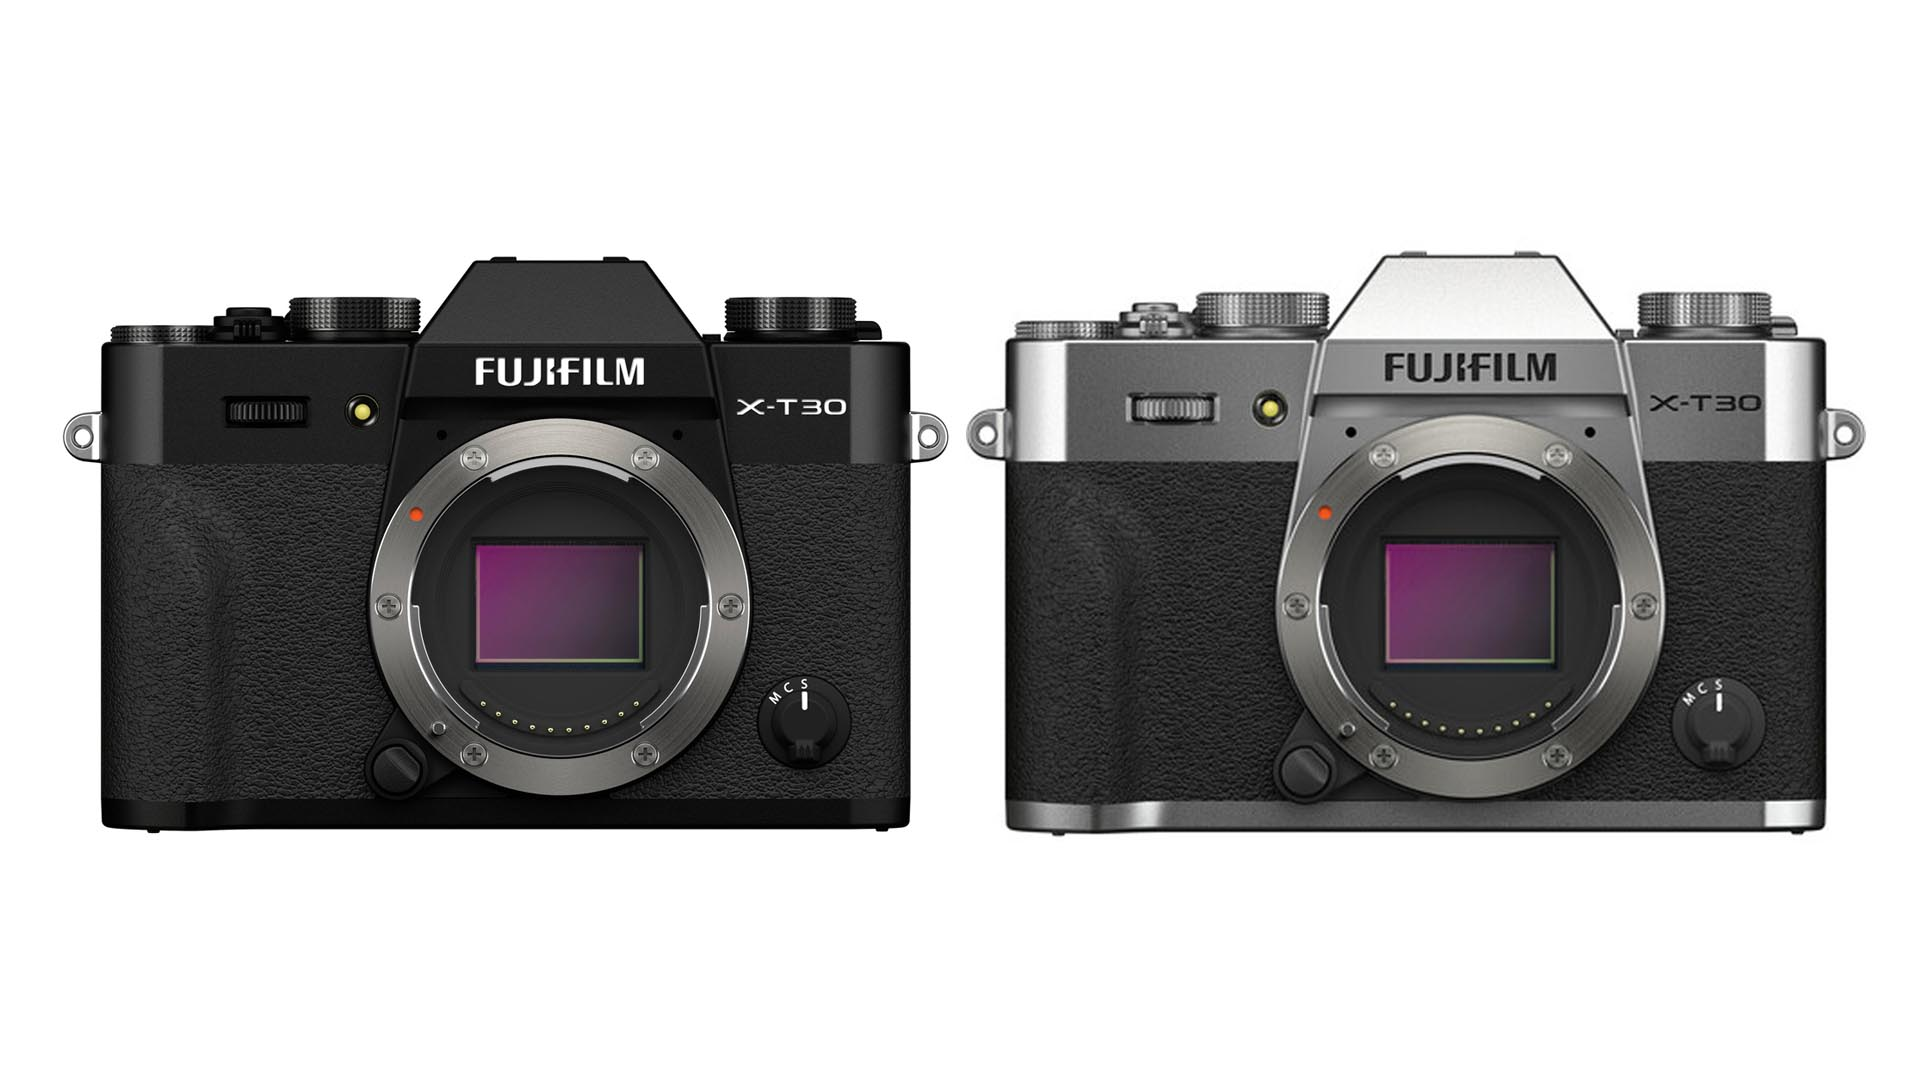 Fujifilm Announces The X-T30 II And Two New XF Lenses